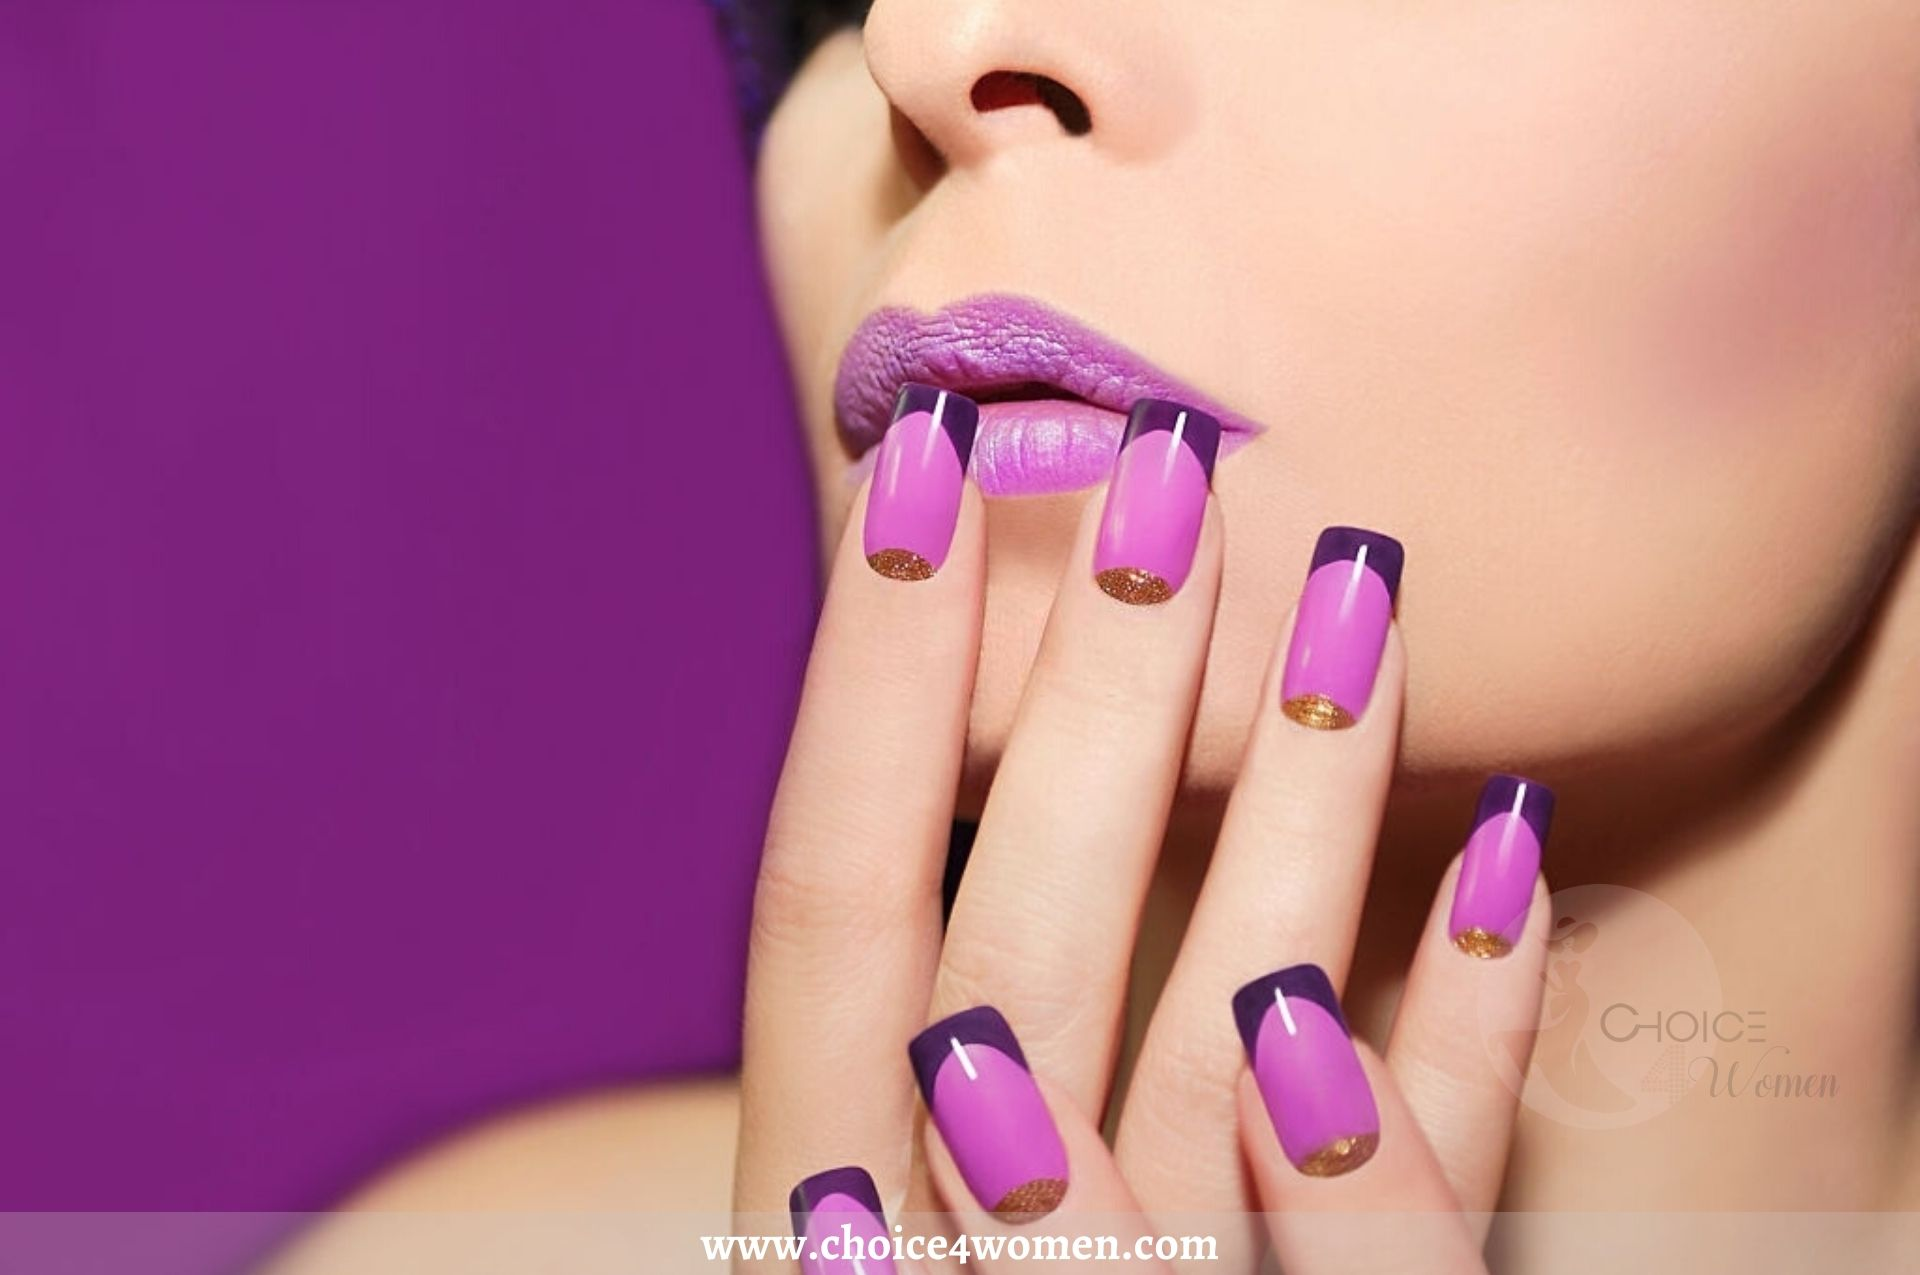 14 Graceful Long Nail Designs For Your Complete Look